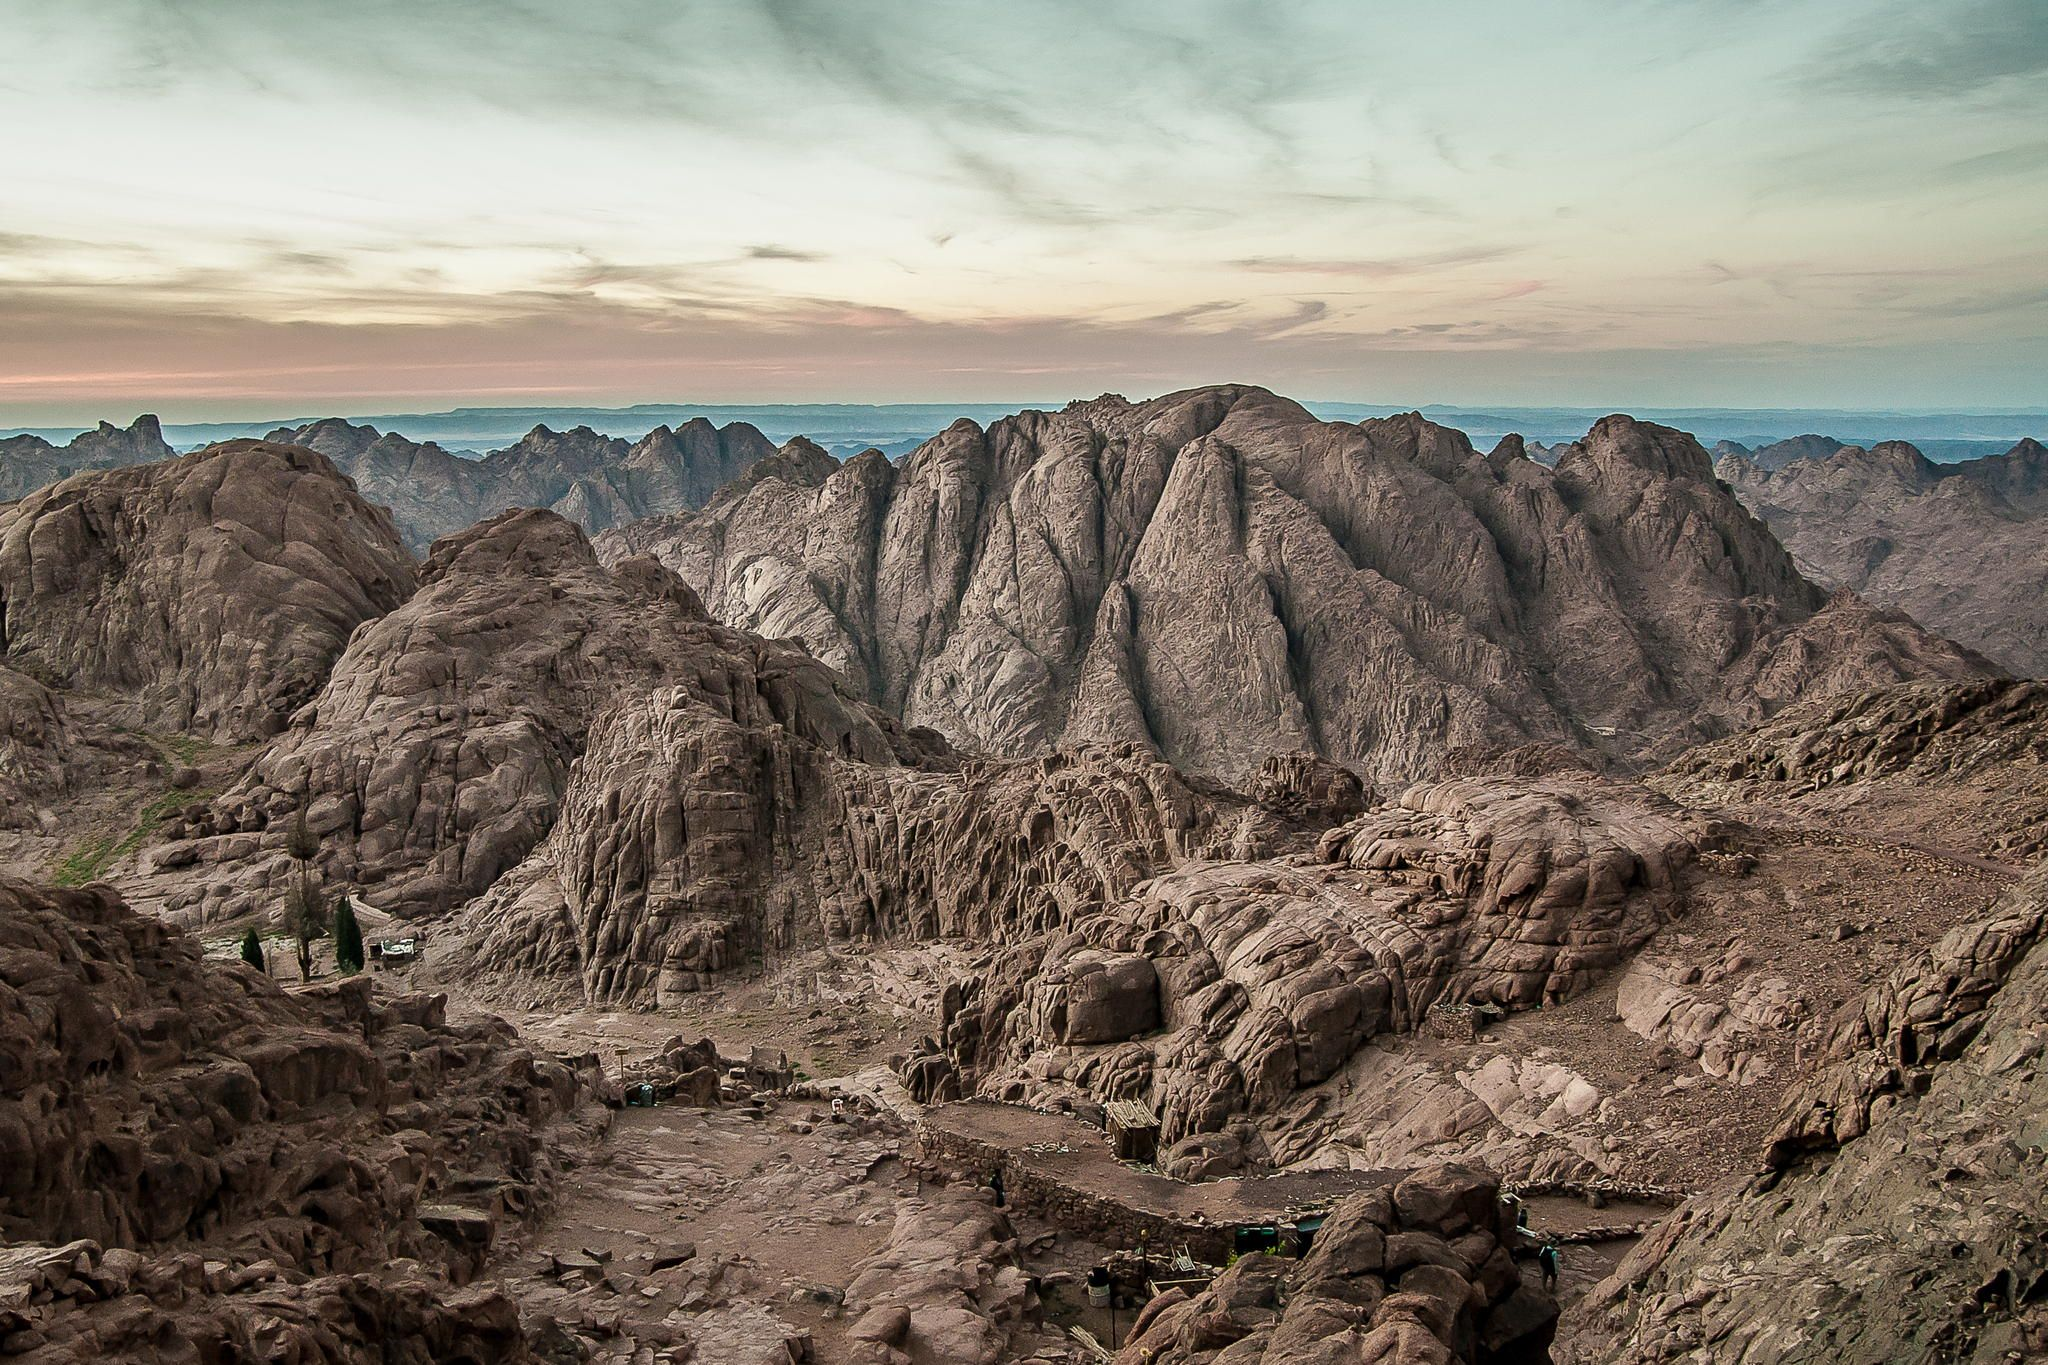 Sacred Mountains by Yasser Ayad on 500px